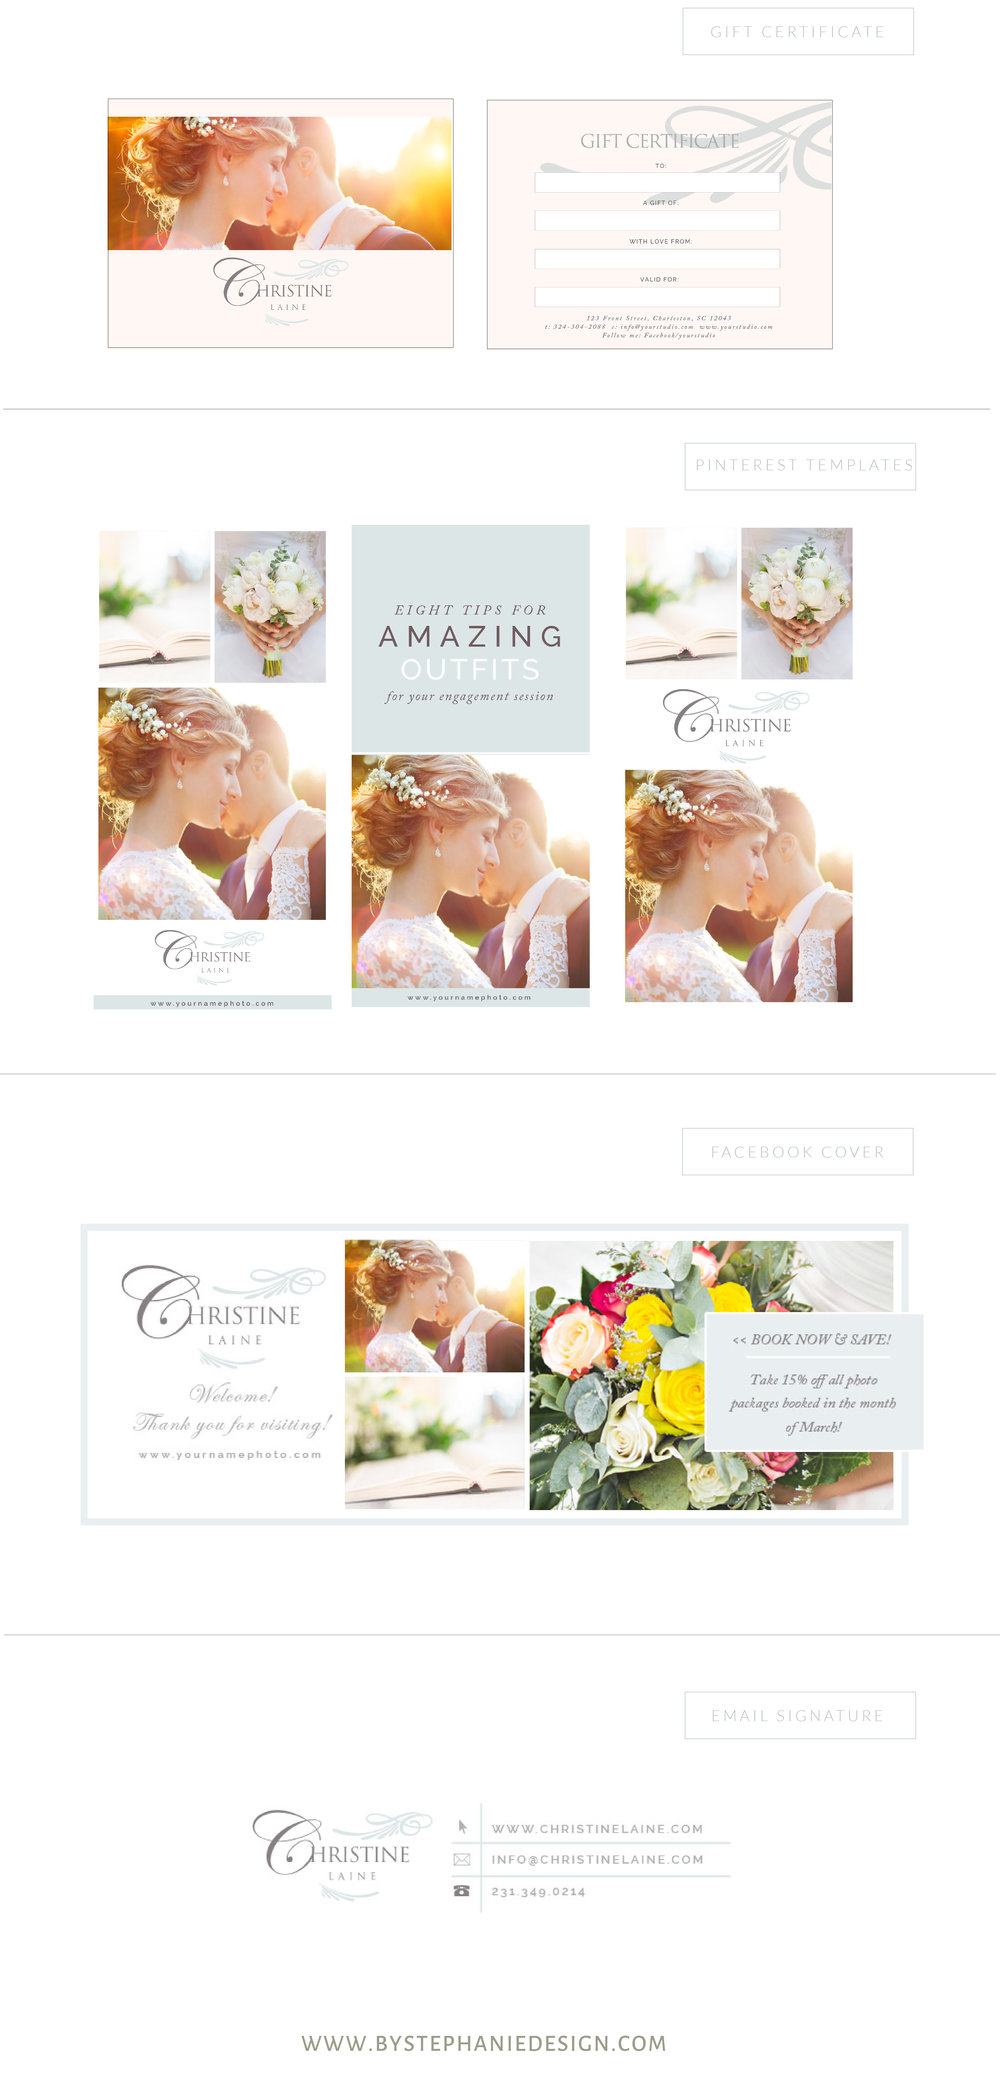 custom brand design for wedding photographers - by stephanie design